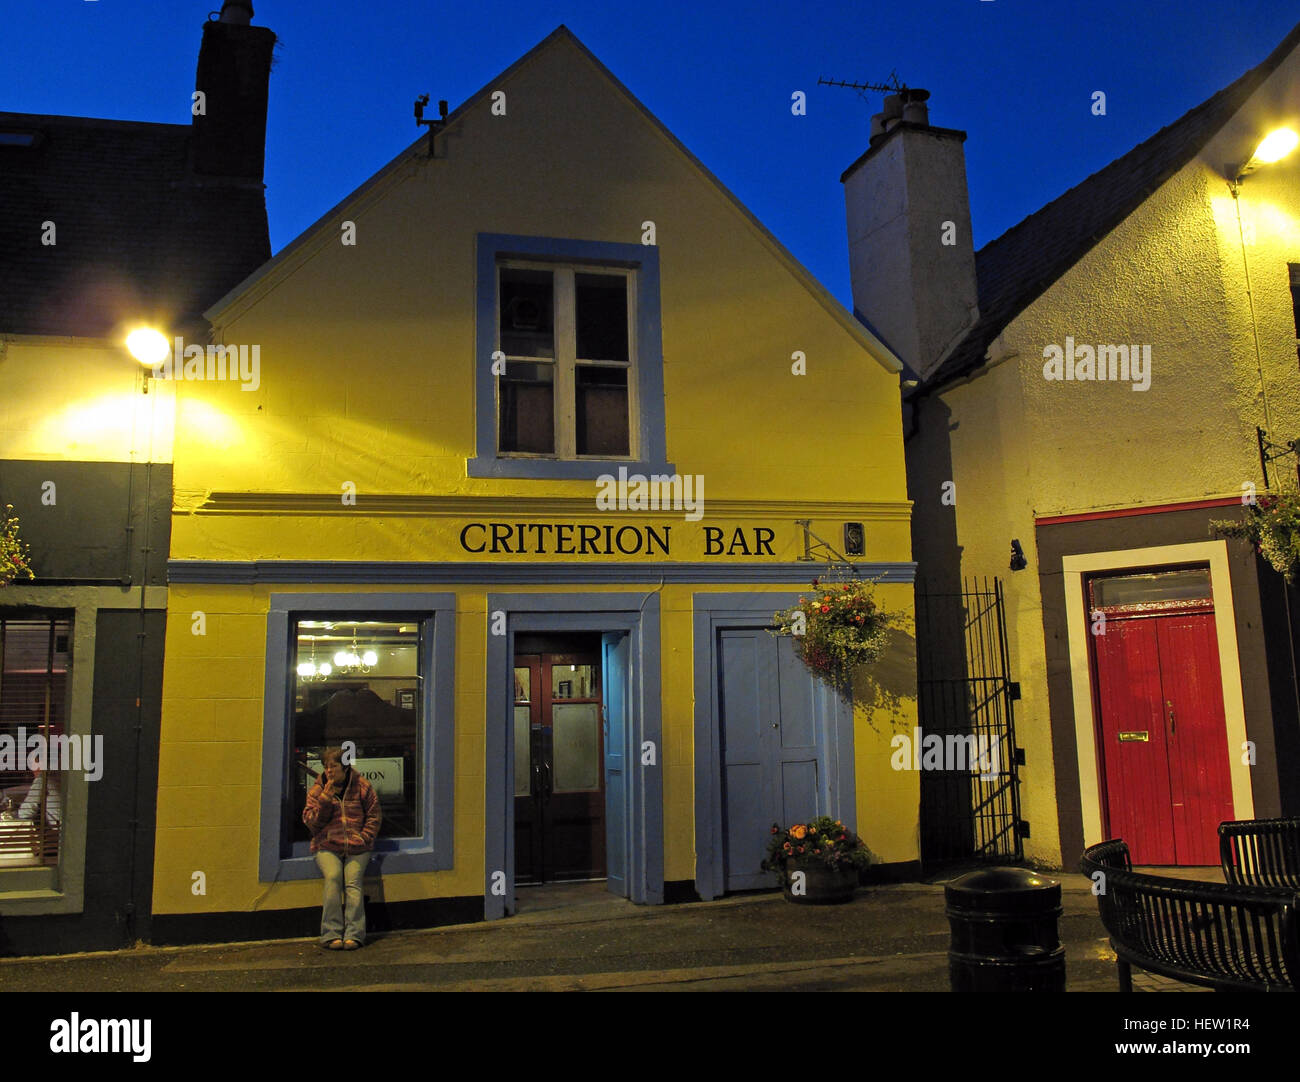 Stornoway Isle Of Lewis,Criterion Bar Stock Photo